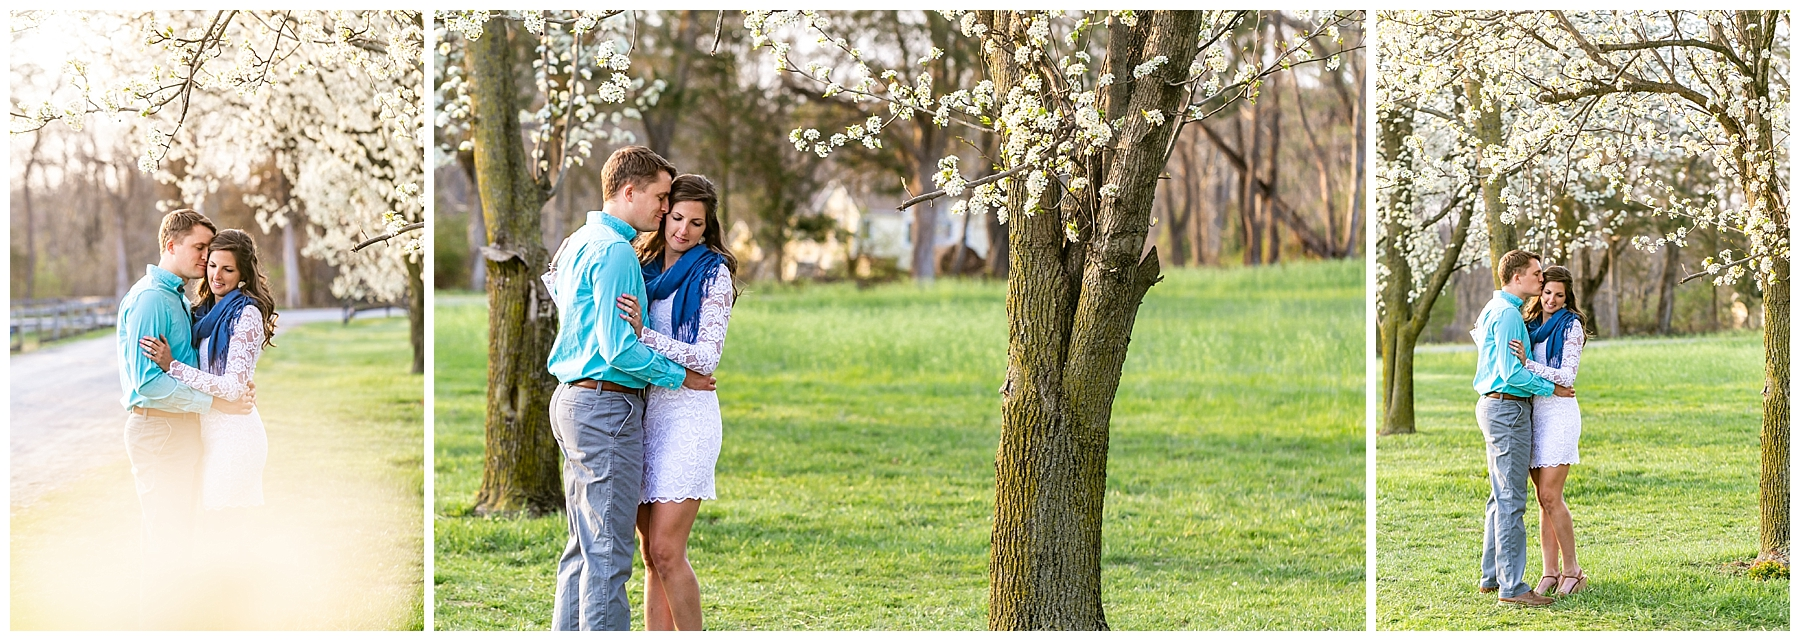 Chelsea Phil Private Estate Engagement Living Radiant Photography photos color_0024.jpg